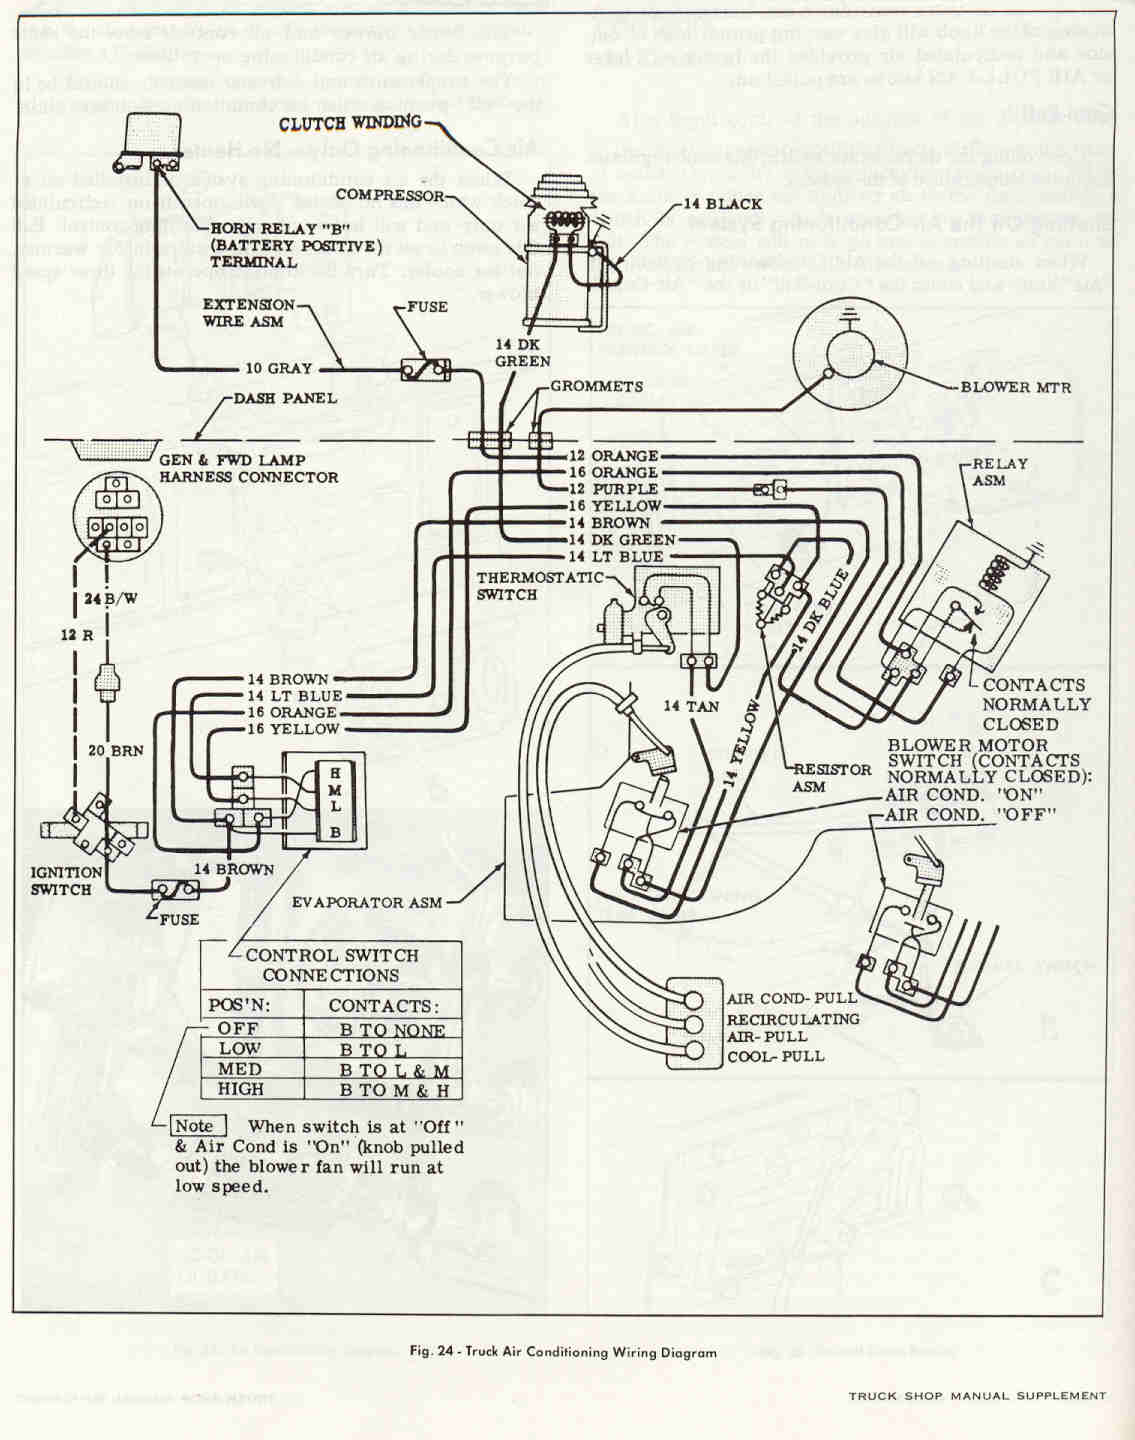 ACWiring ac heater fan wiring diagram for 66 c10 chevytalk free wiring diagram 69 chevy truck at aneh.co